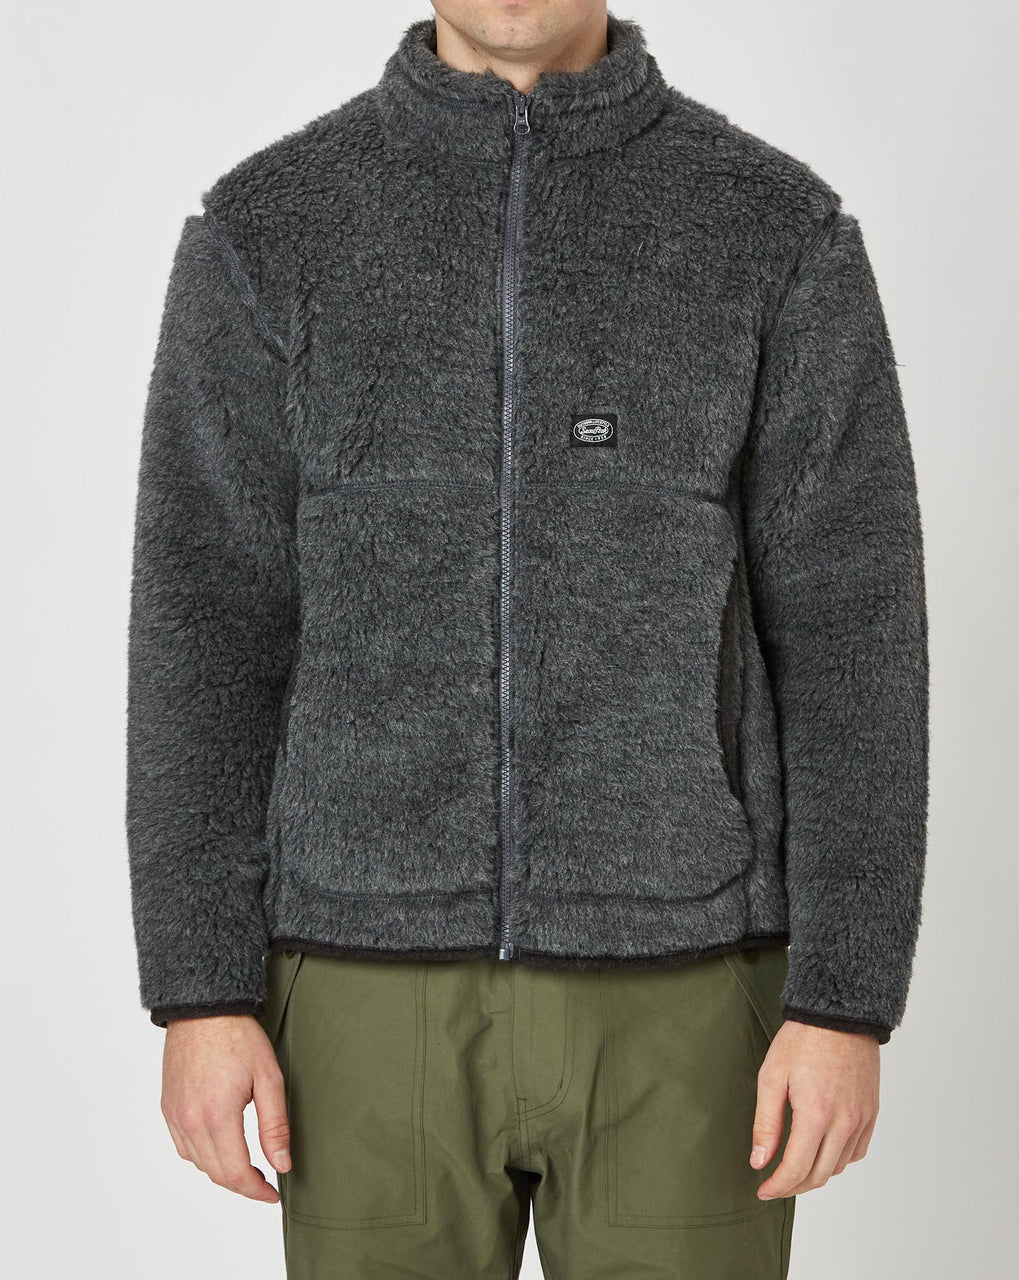 Snow Peak Wool Fleece Jacket (Grey)